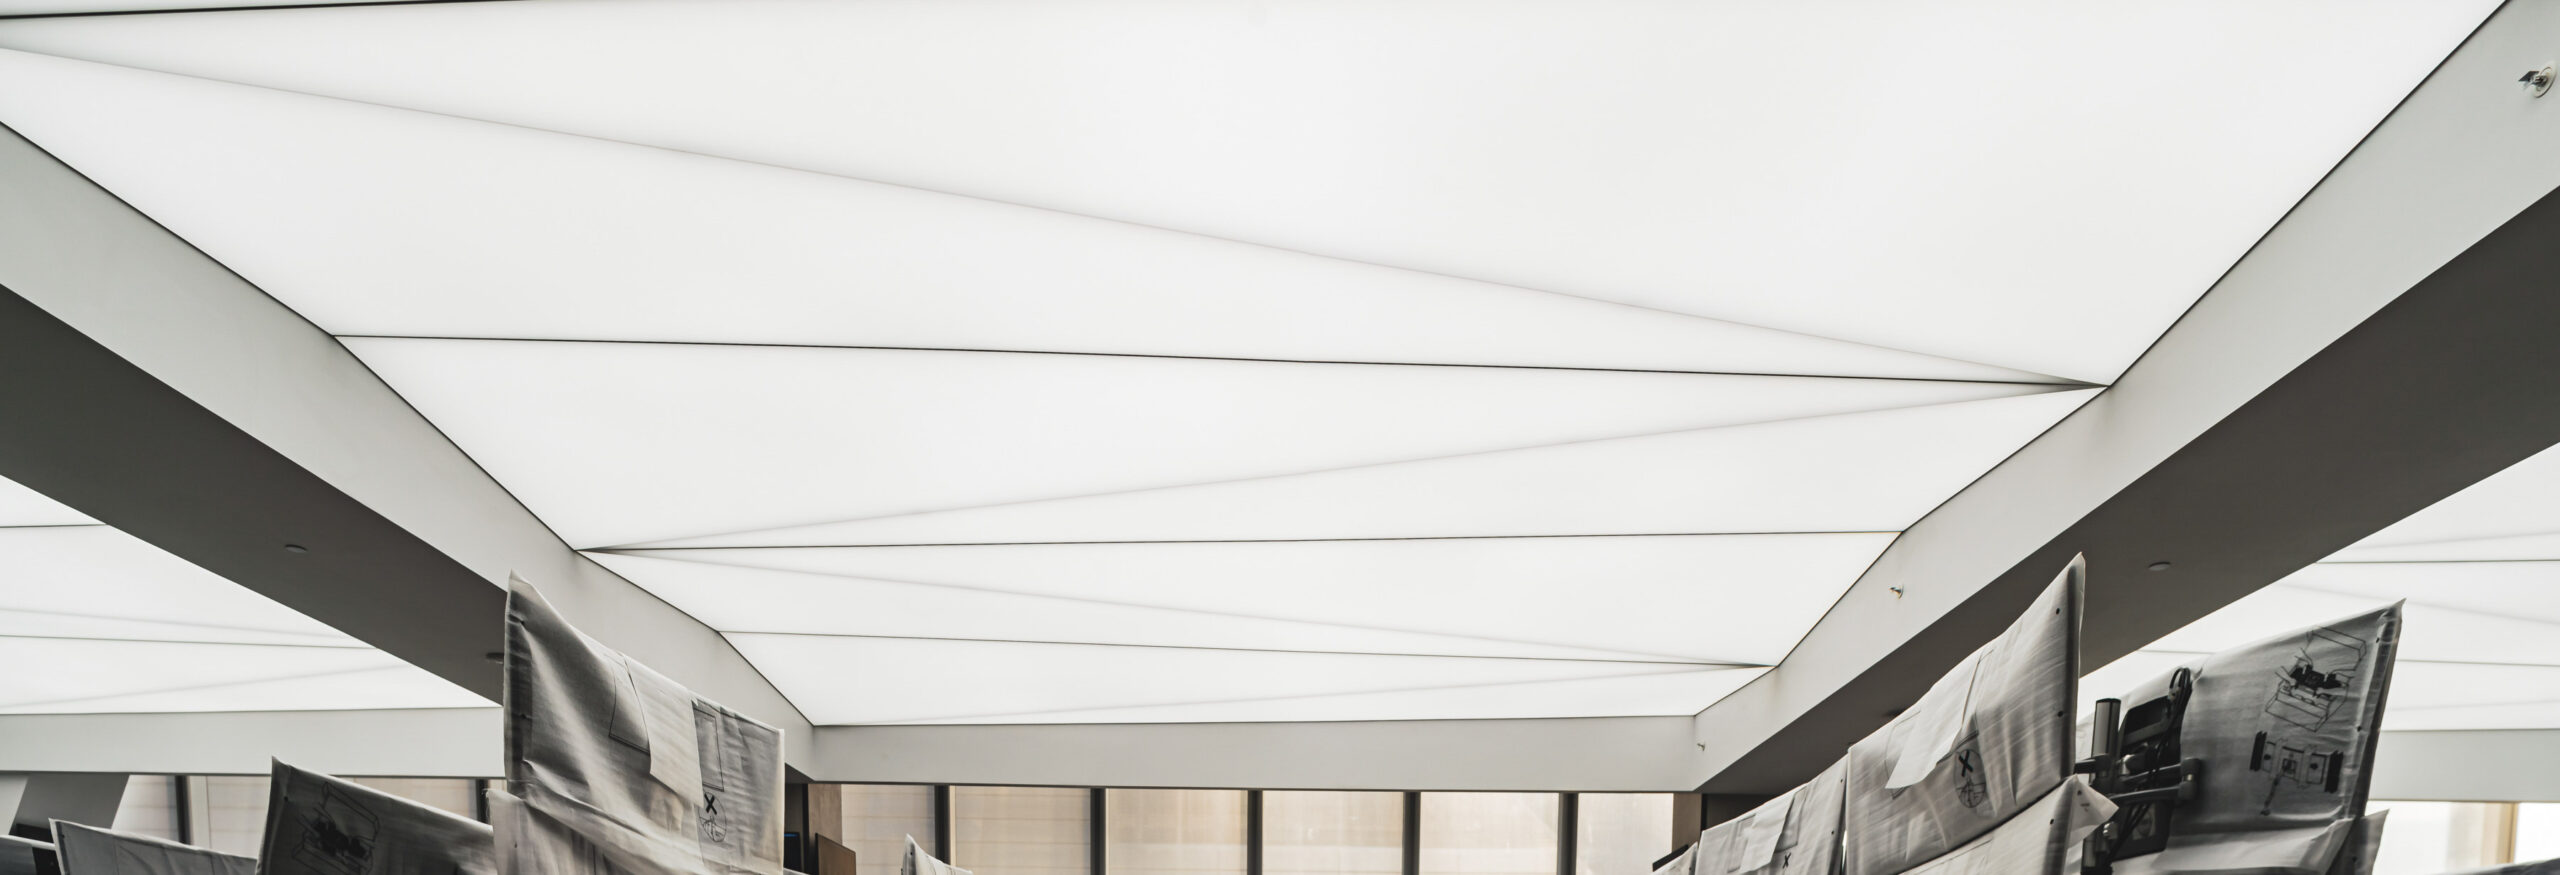 Apogee Lighting creates unique Ceiling Solution for new Hudson Yards Tenant